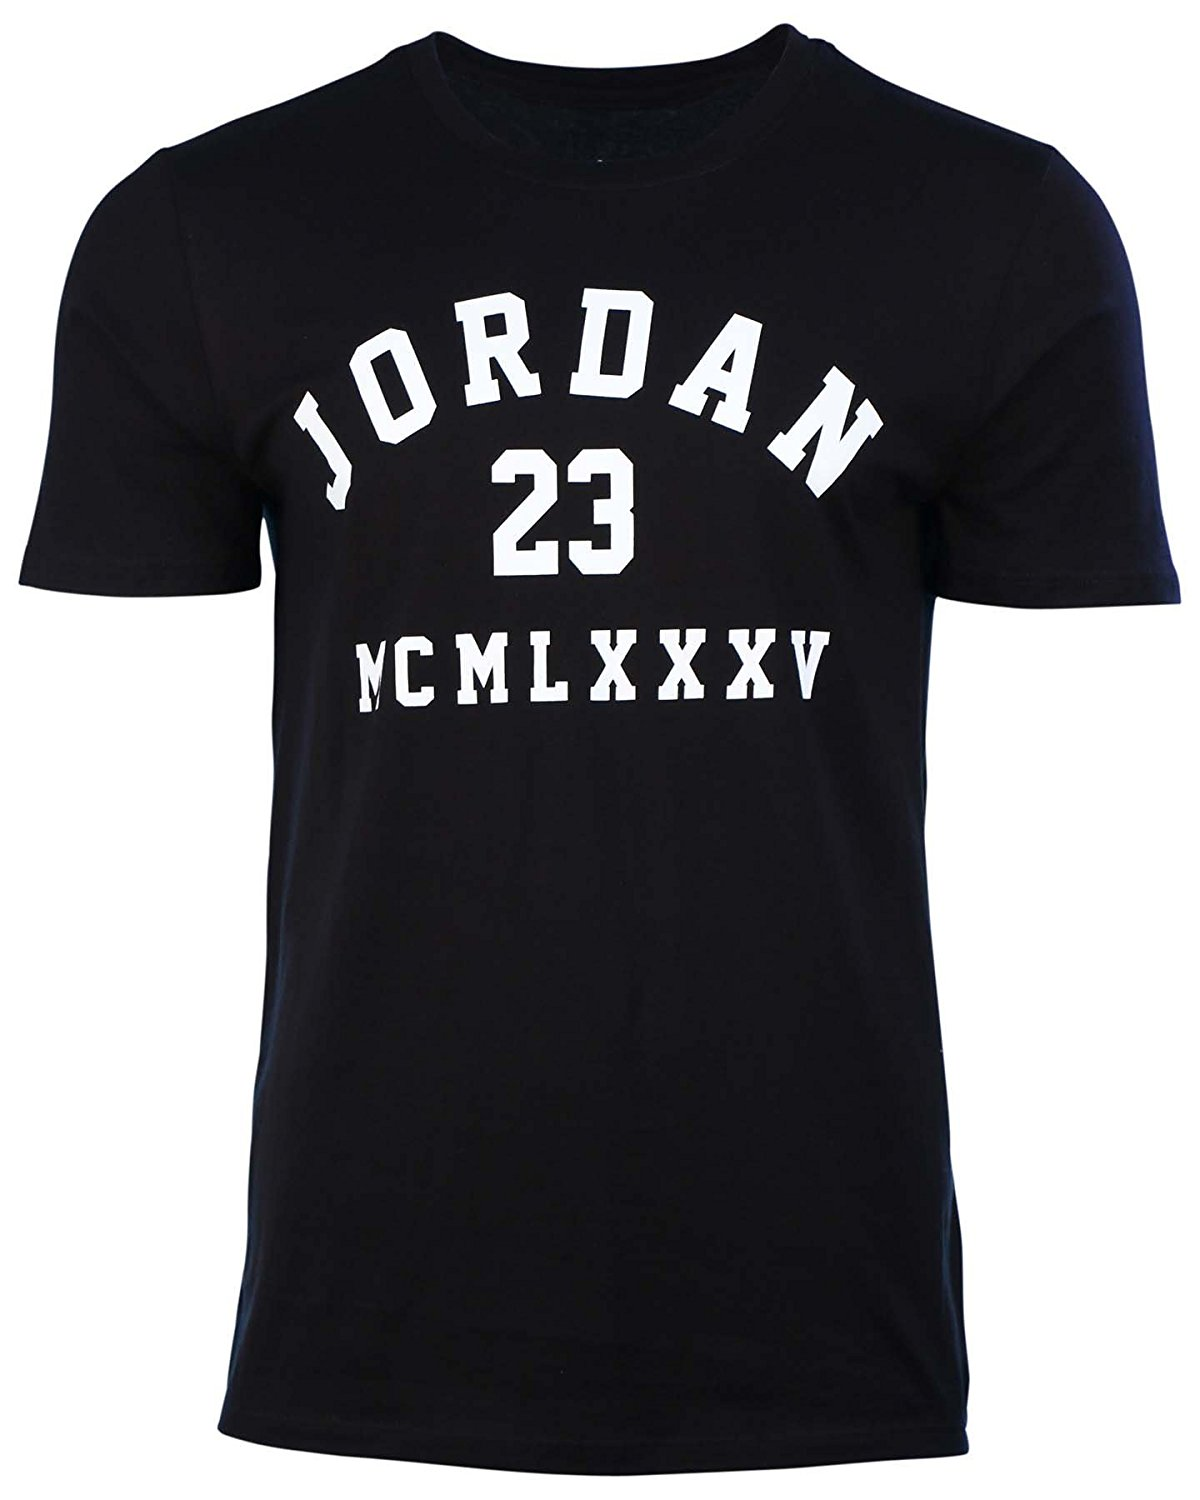 29e4fa820c1 Get Quotations · Jordan Men s Nike 23 MCMLXXXV Basketball T-Shirt-Black-XL